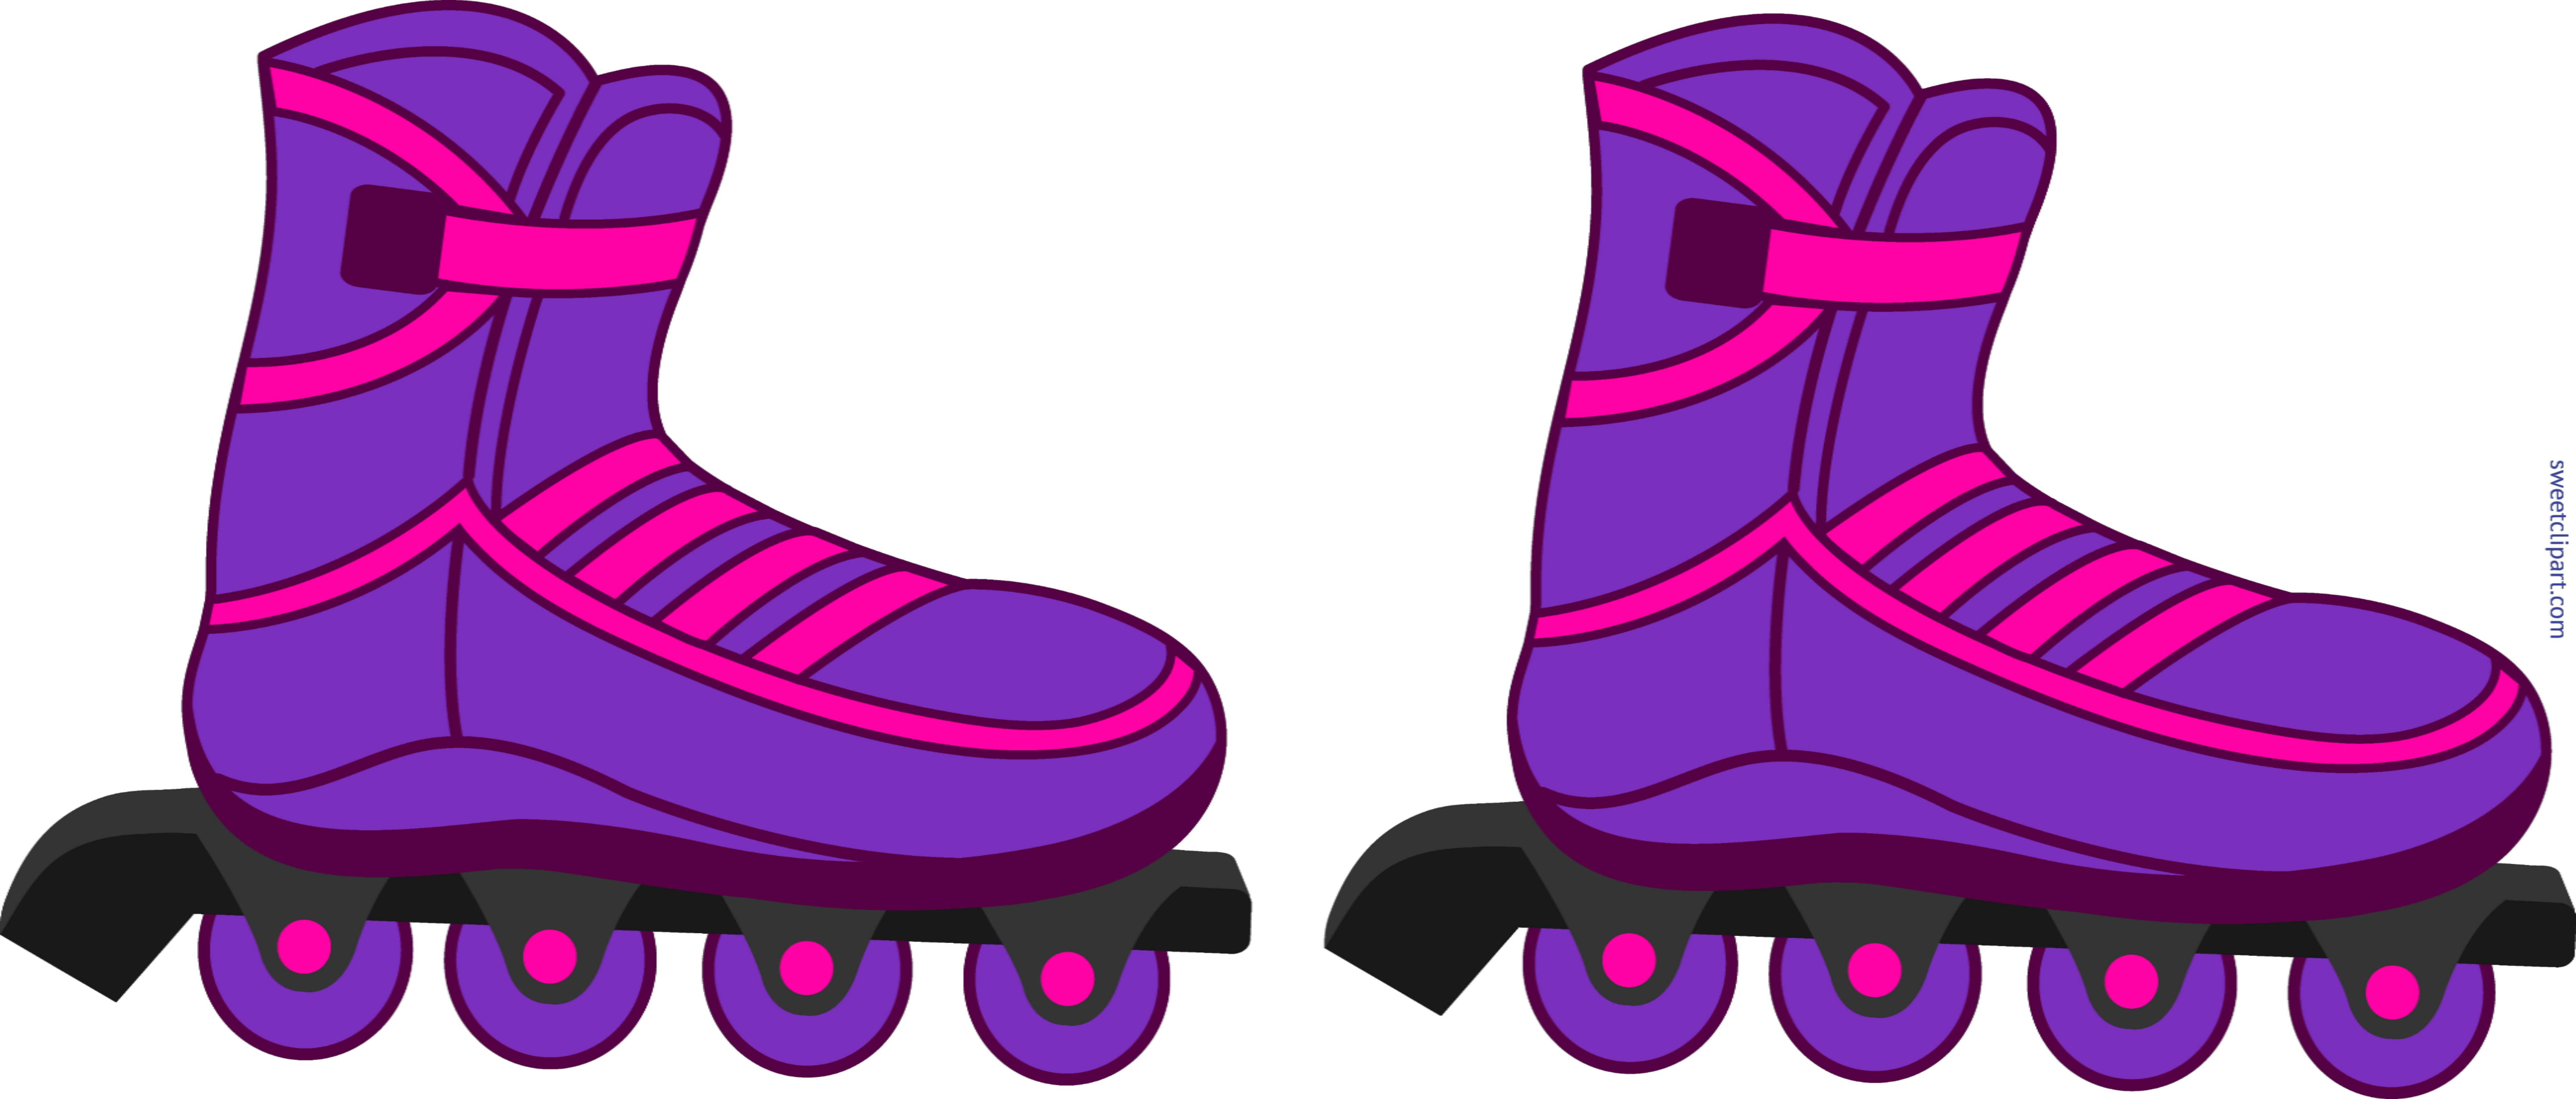 Rollerblade clipart clipart library stock Rollerblades Purple Clip Art - Sweet Clip Art   aj in 2019 ... clipart library stock